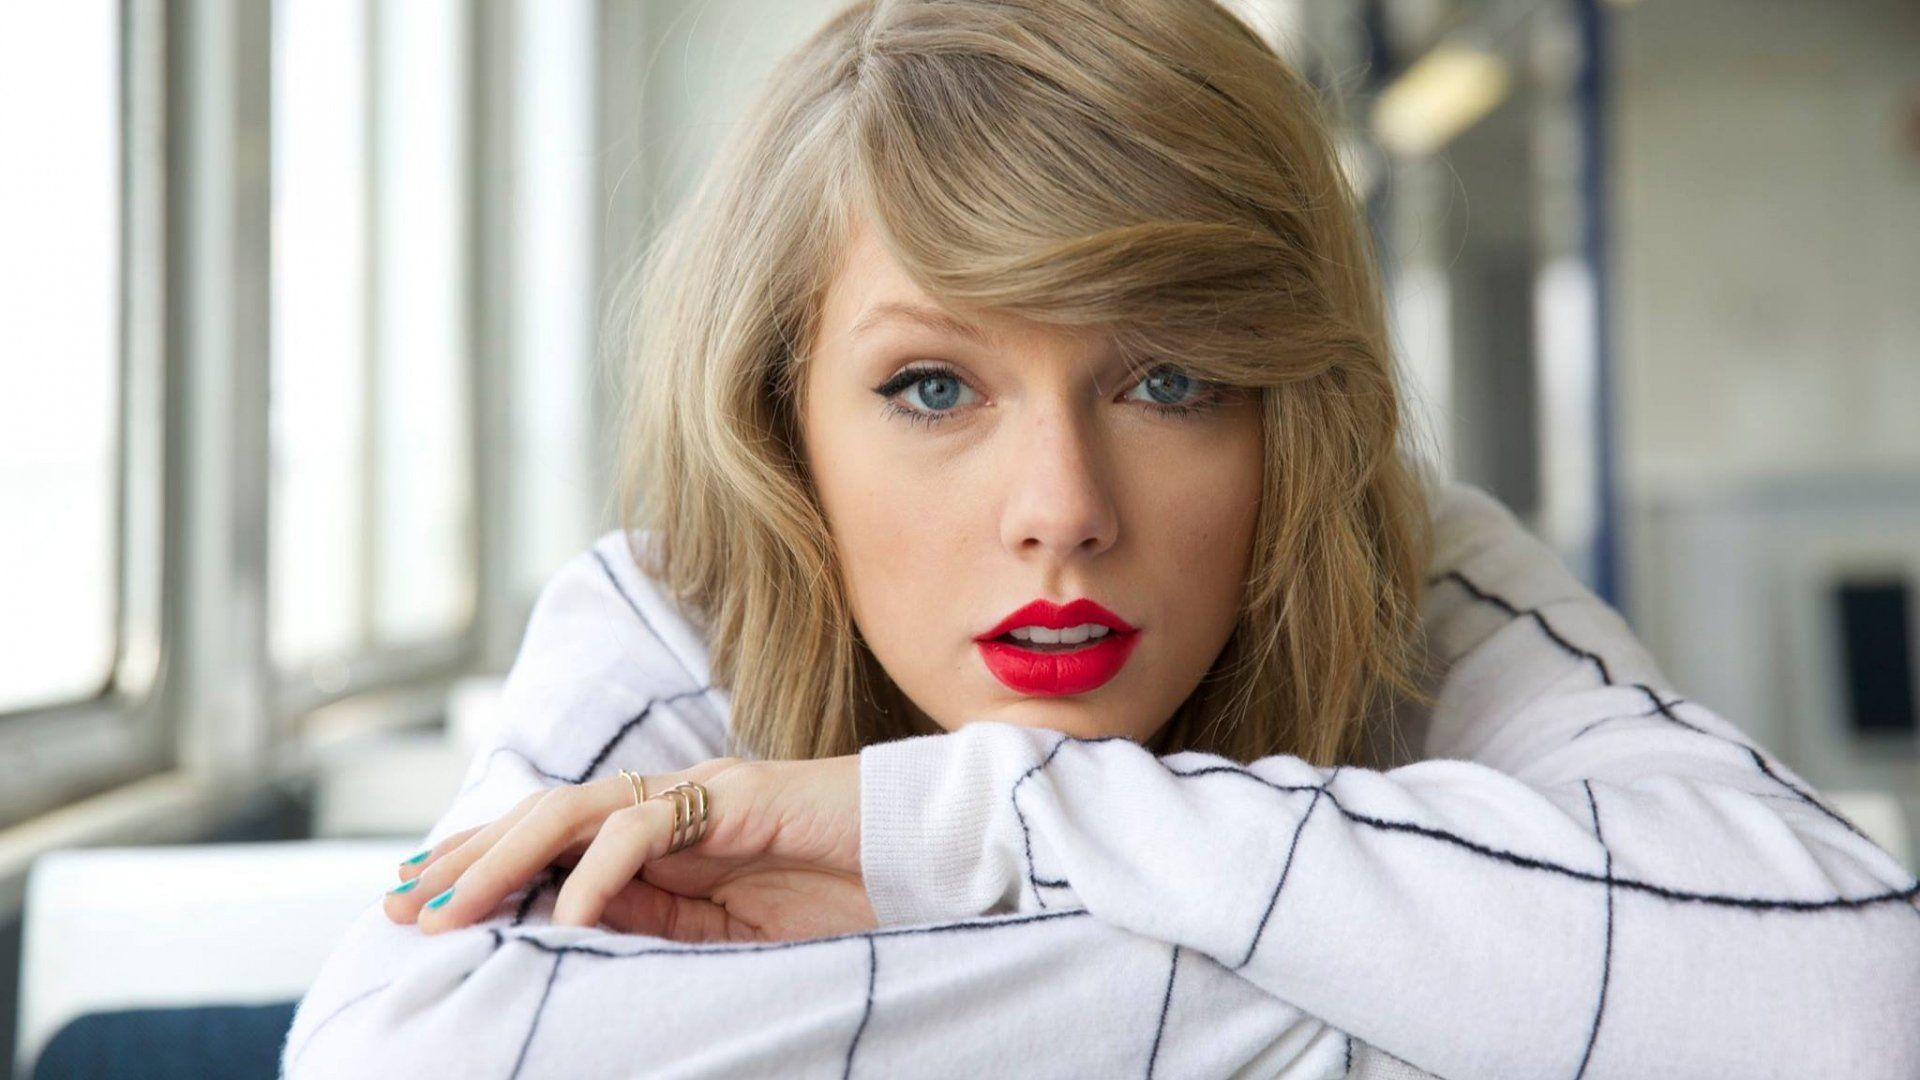 Taylor Swift Wallpapers Mobile On High Resolution Wallpaper in 1920x1080